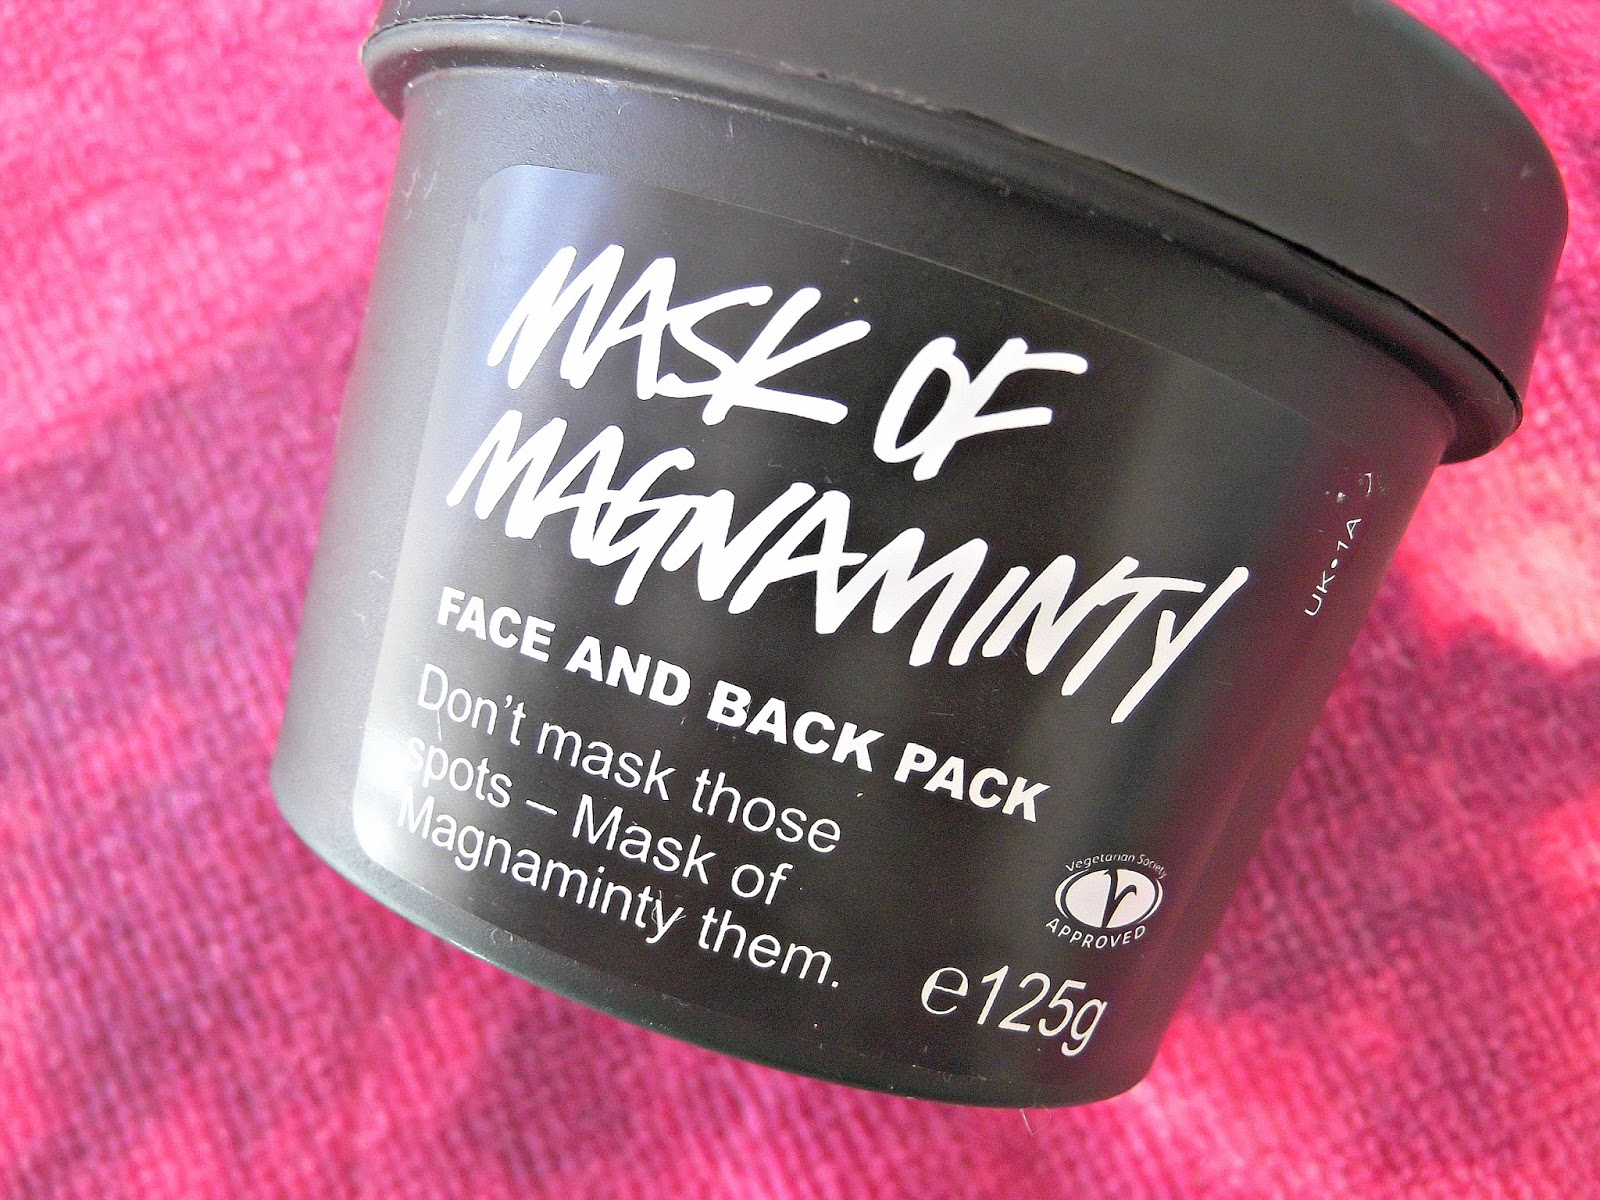 An image of Lush Mask of Magnaminity